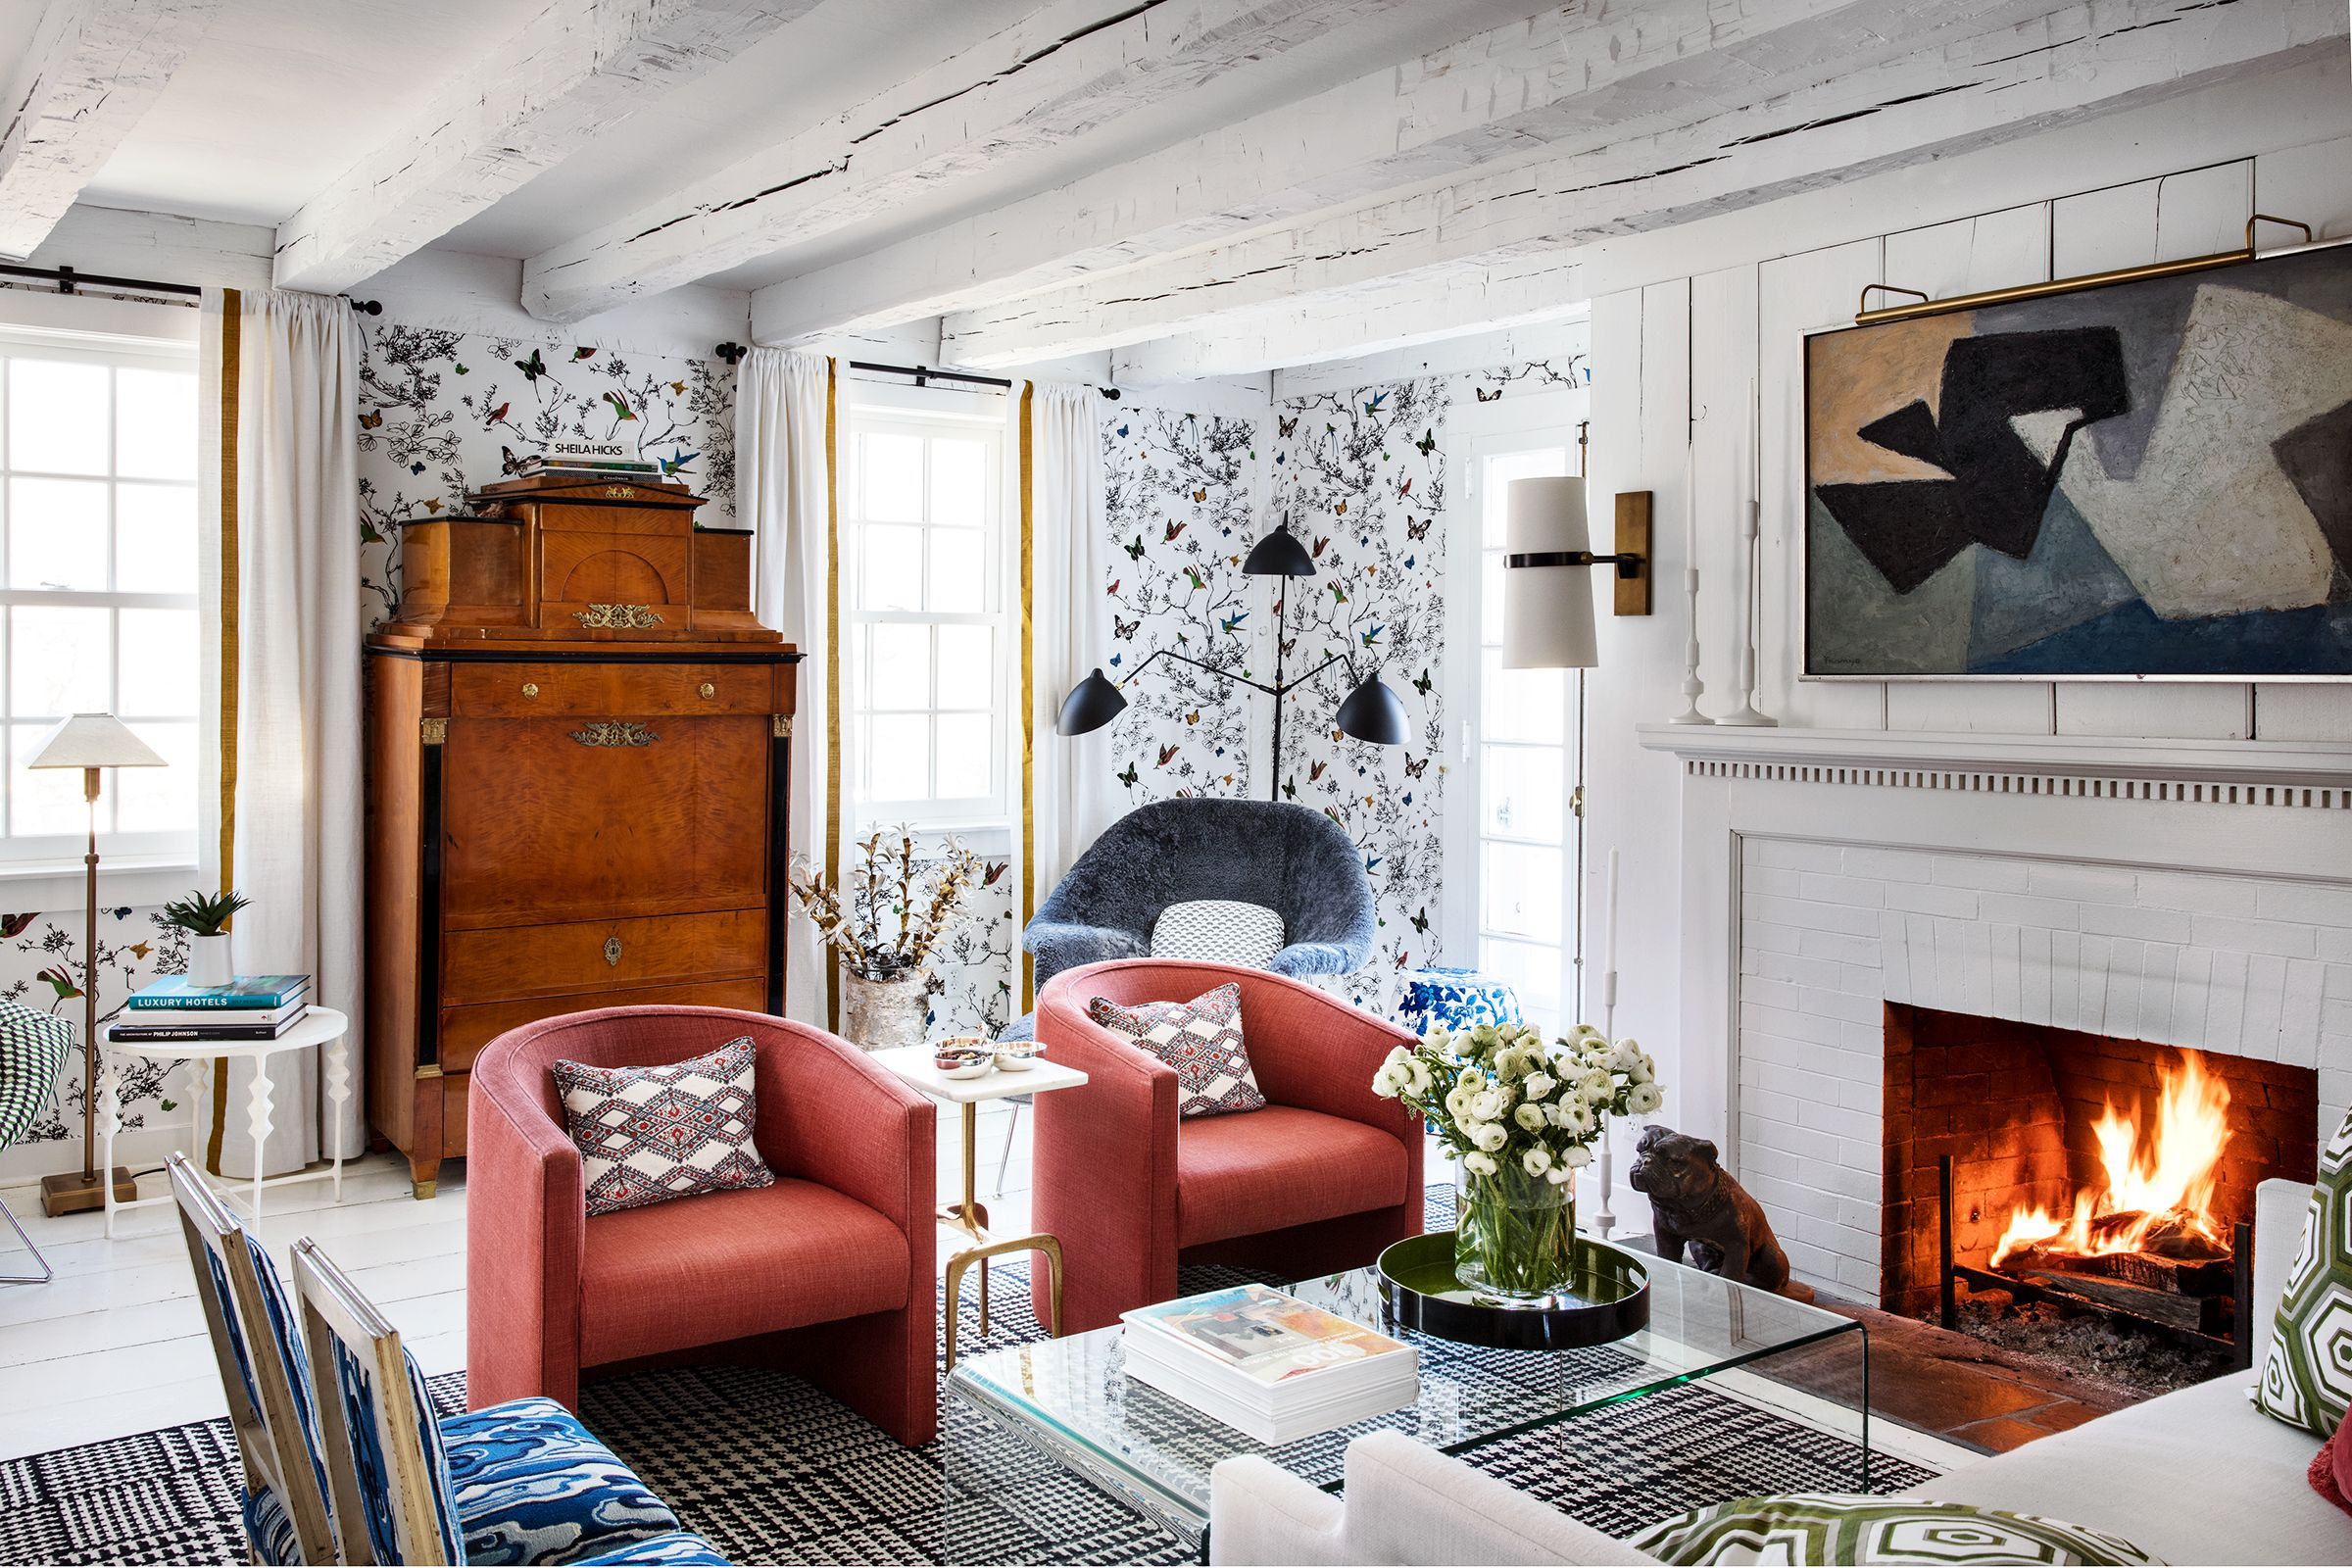 Timeless Living Room Wallpaper Ideas That Stand the Test of Time